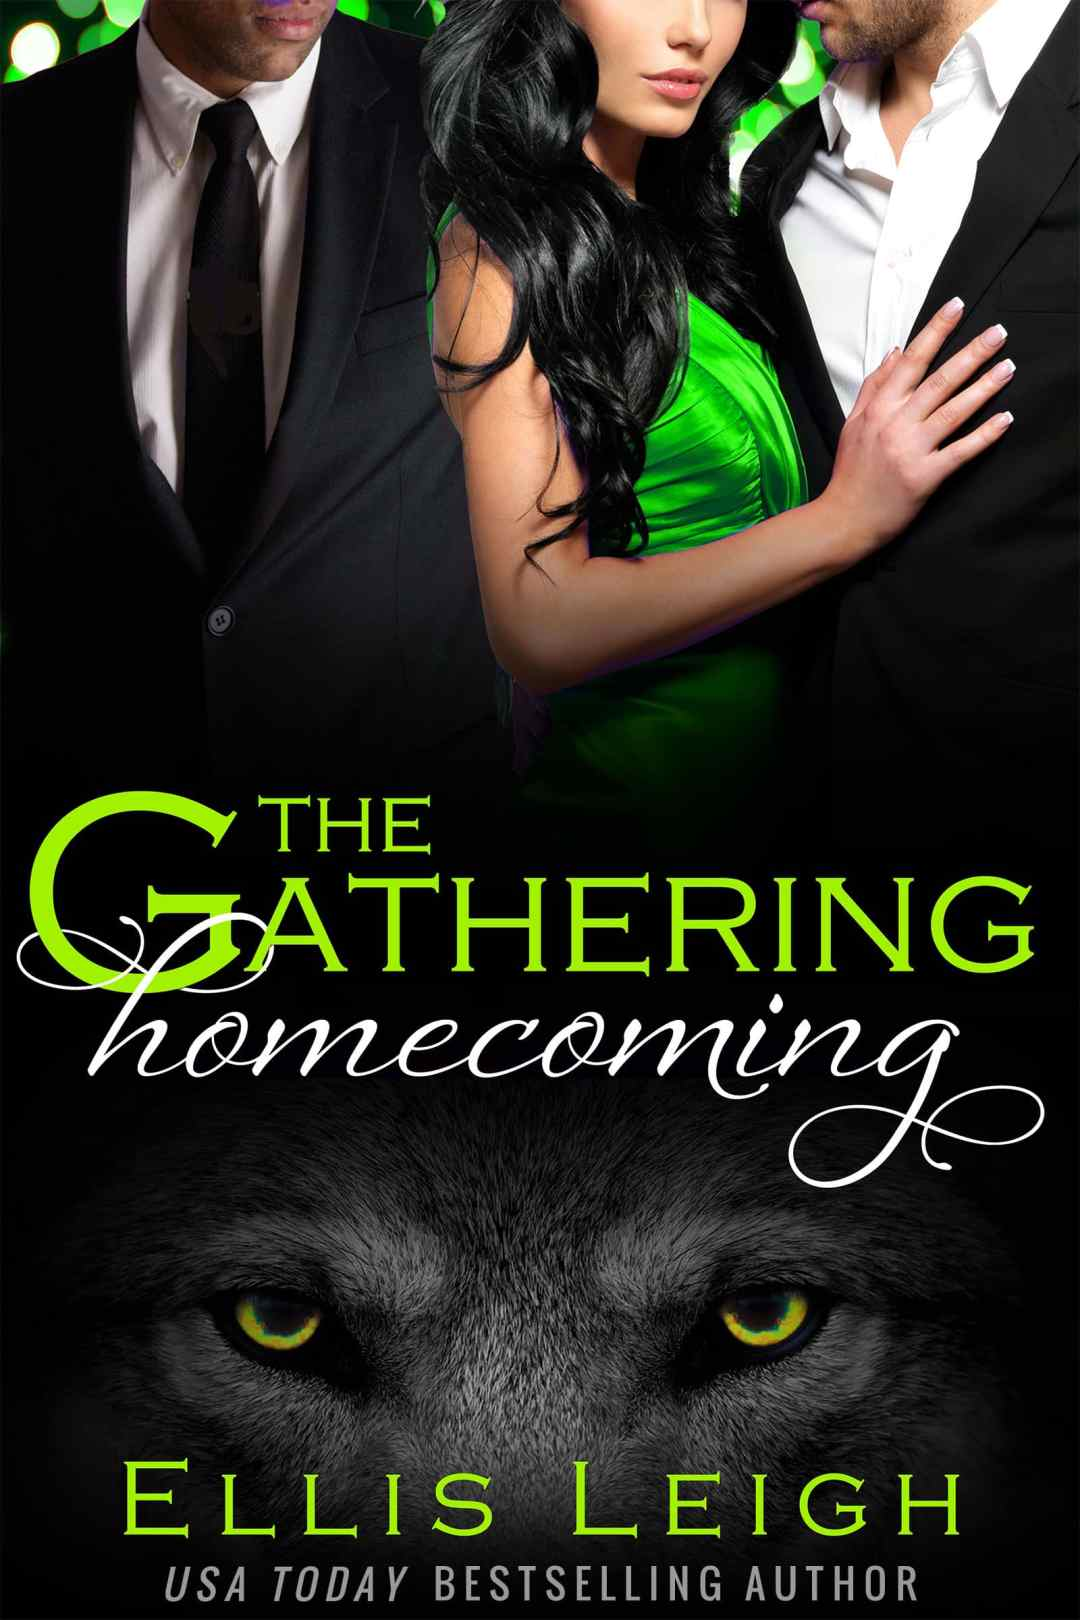 The Gathering: Homecoming